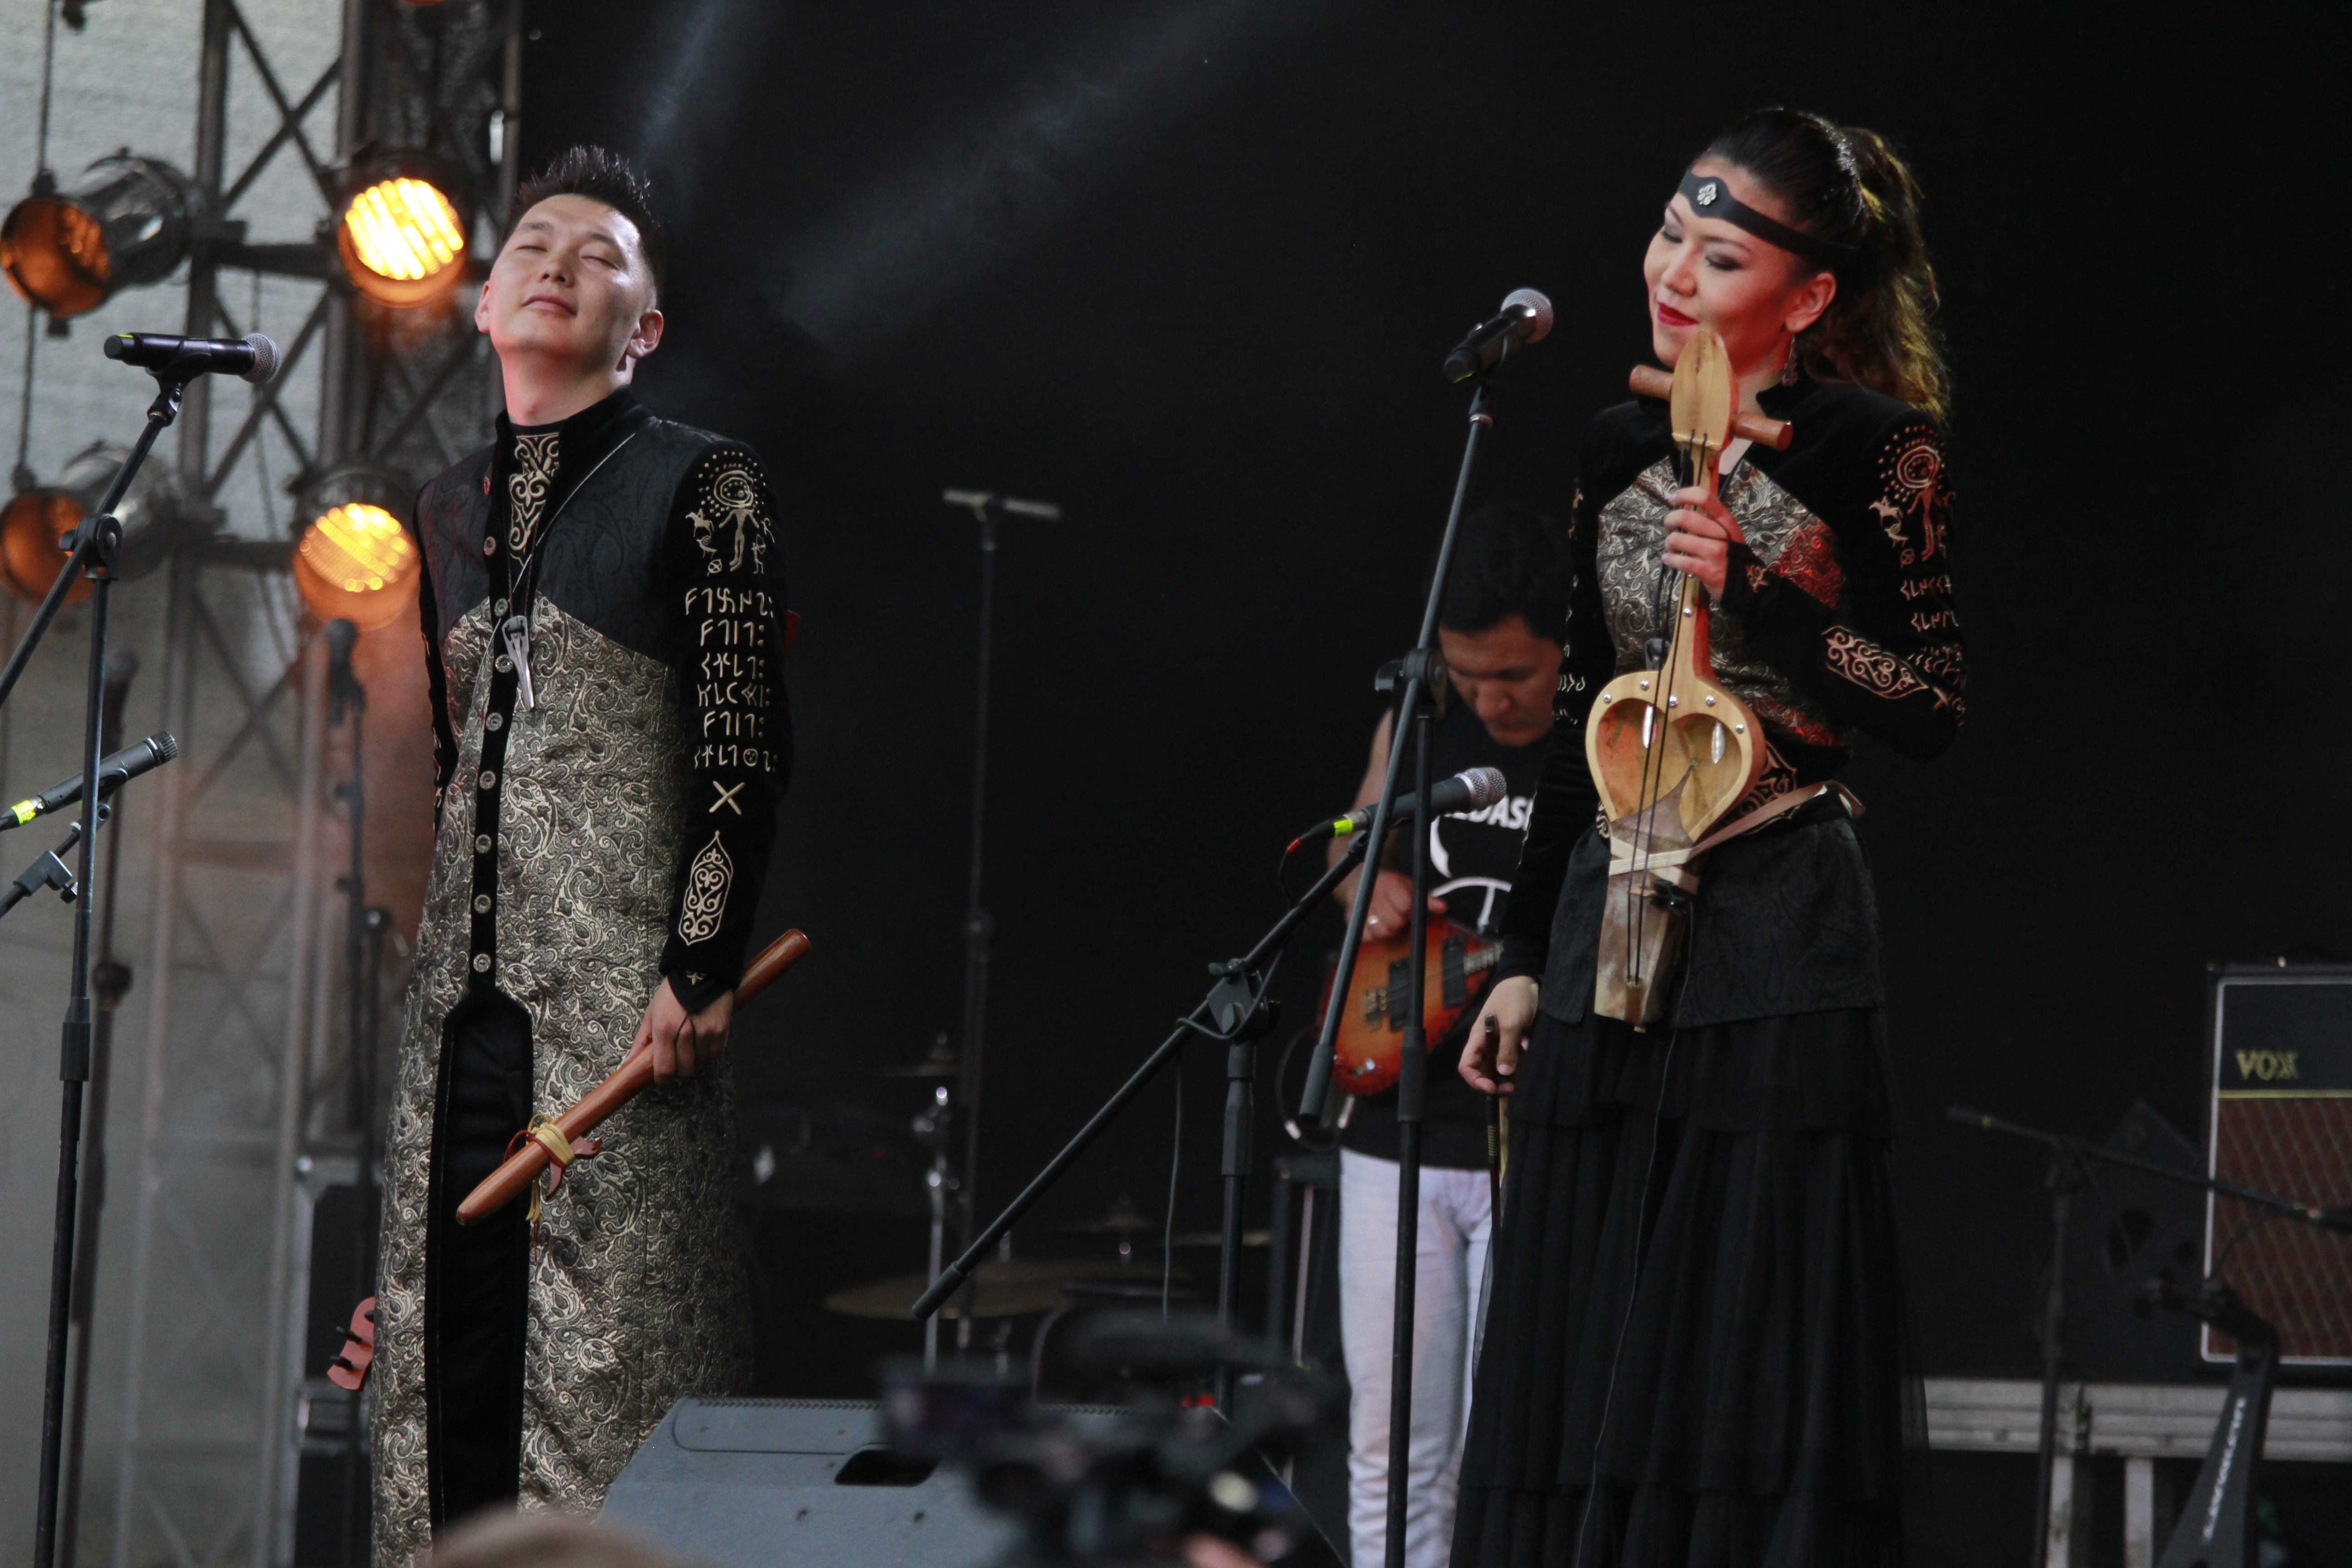 Kazakhstani ethnic band Arkaiym debutes at The Spirit of